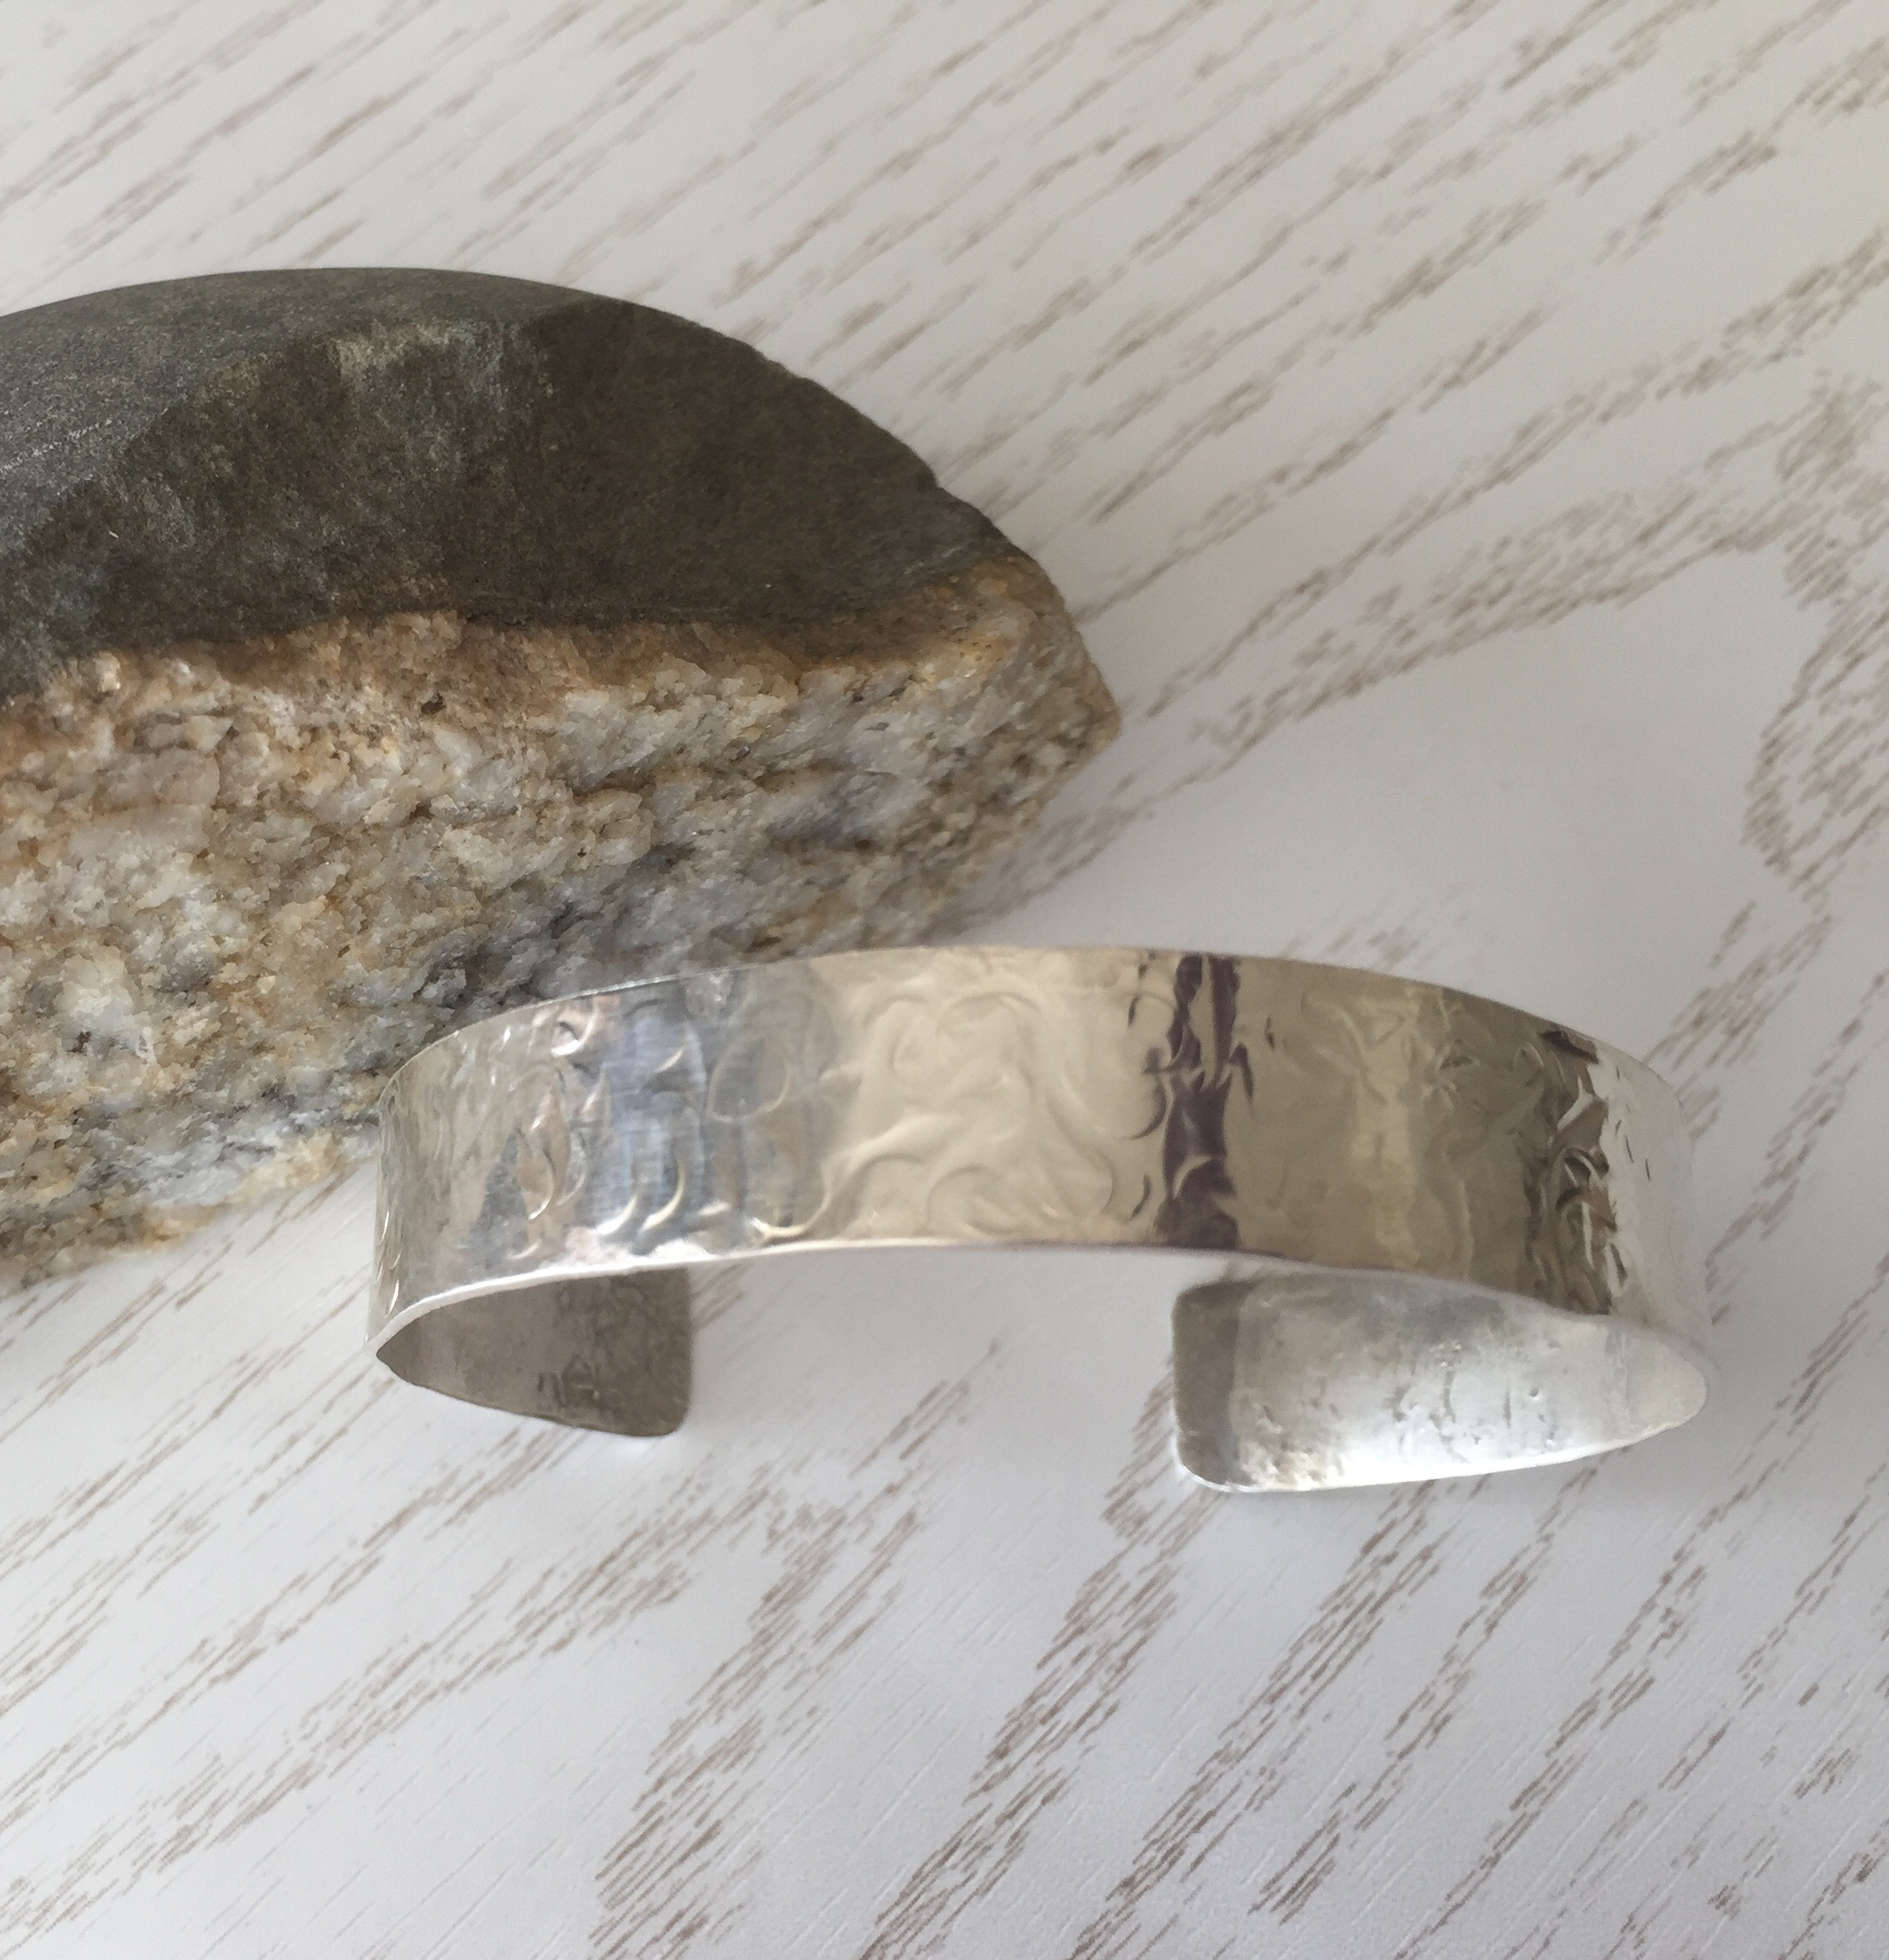 Wide Hallmarked 925 Sterling Silver Hammered Bracelet Cuff in a Gift Box